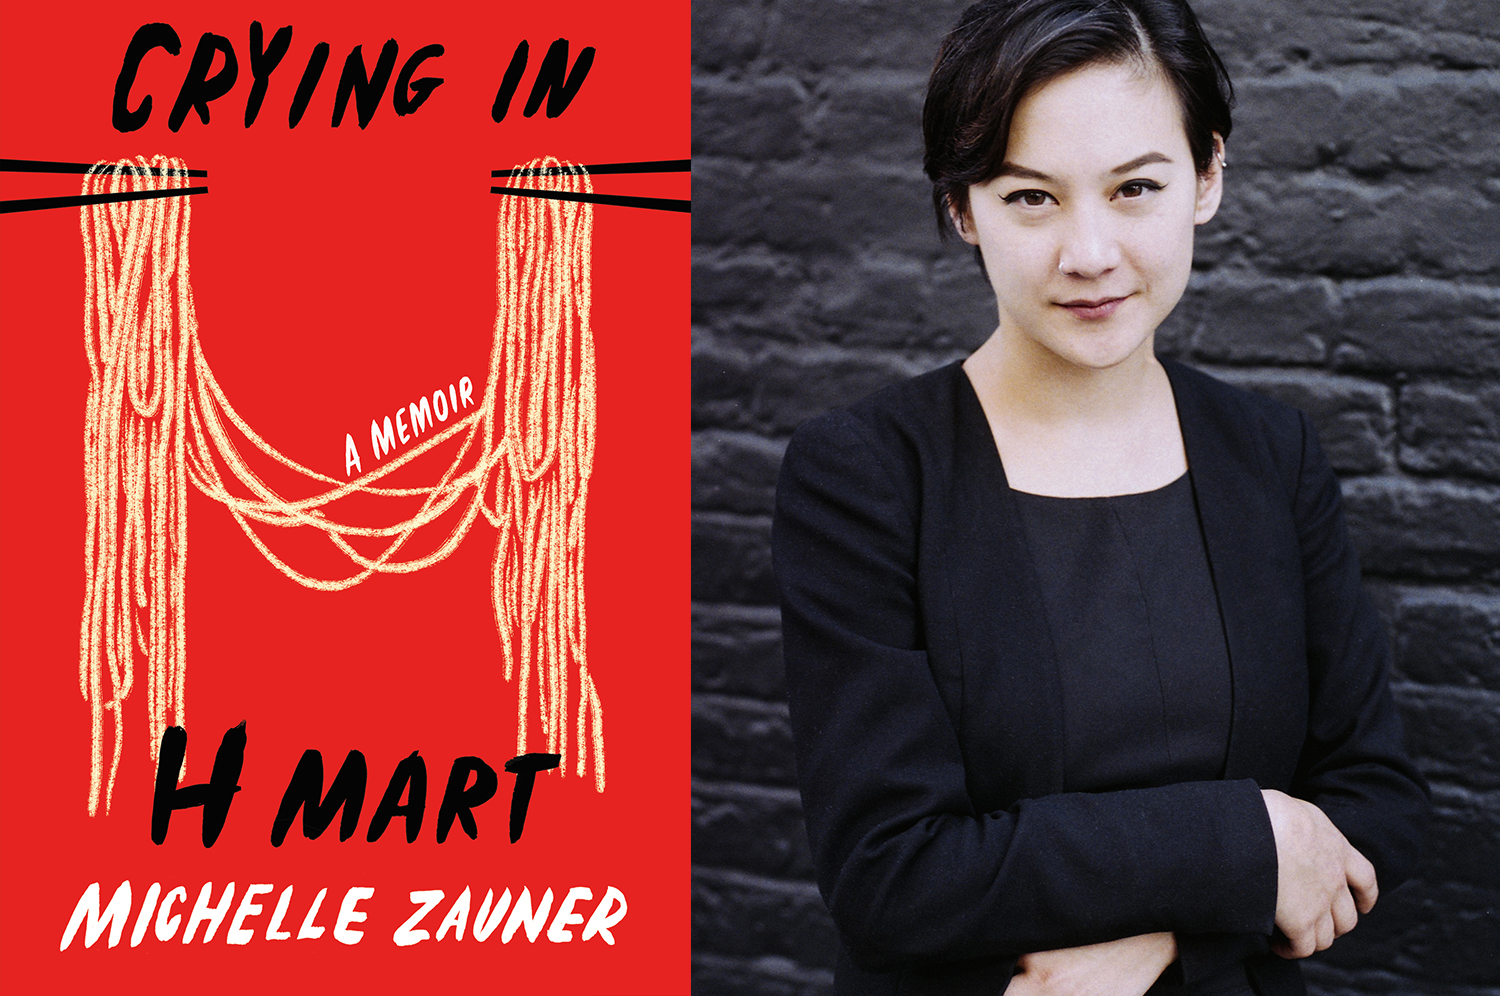 The book cover for Crying in H Mart and a photo of a woman, Michelle Zauner, with her arms crossed